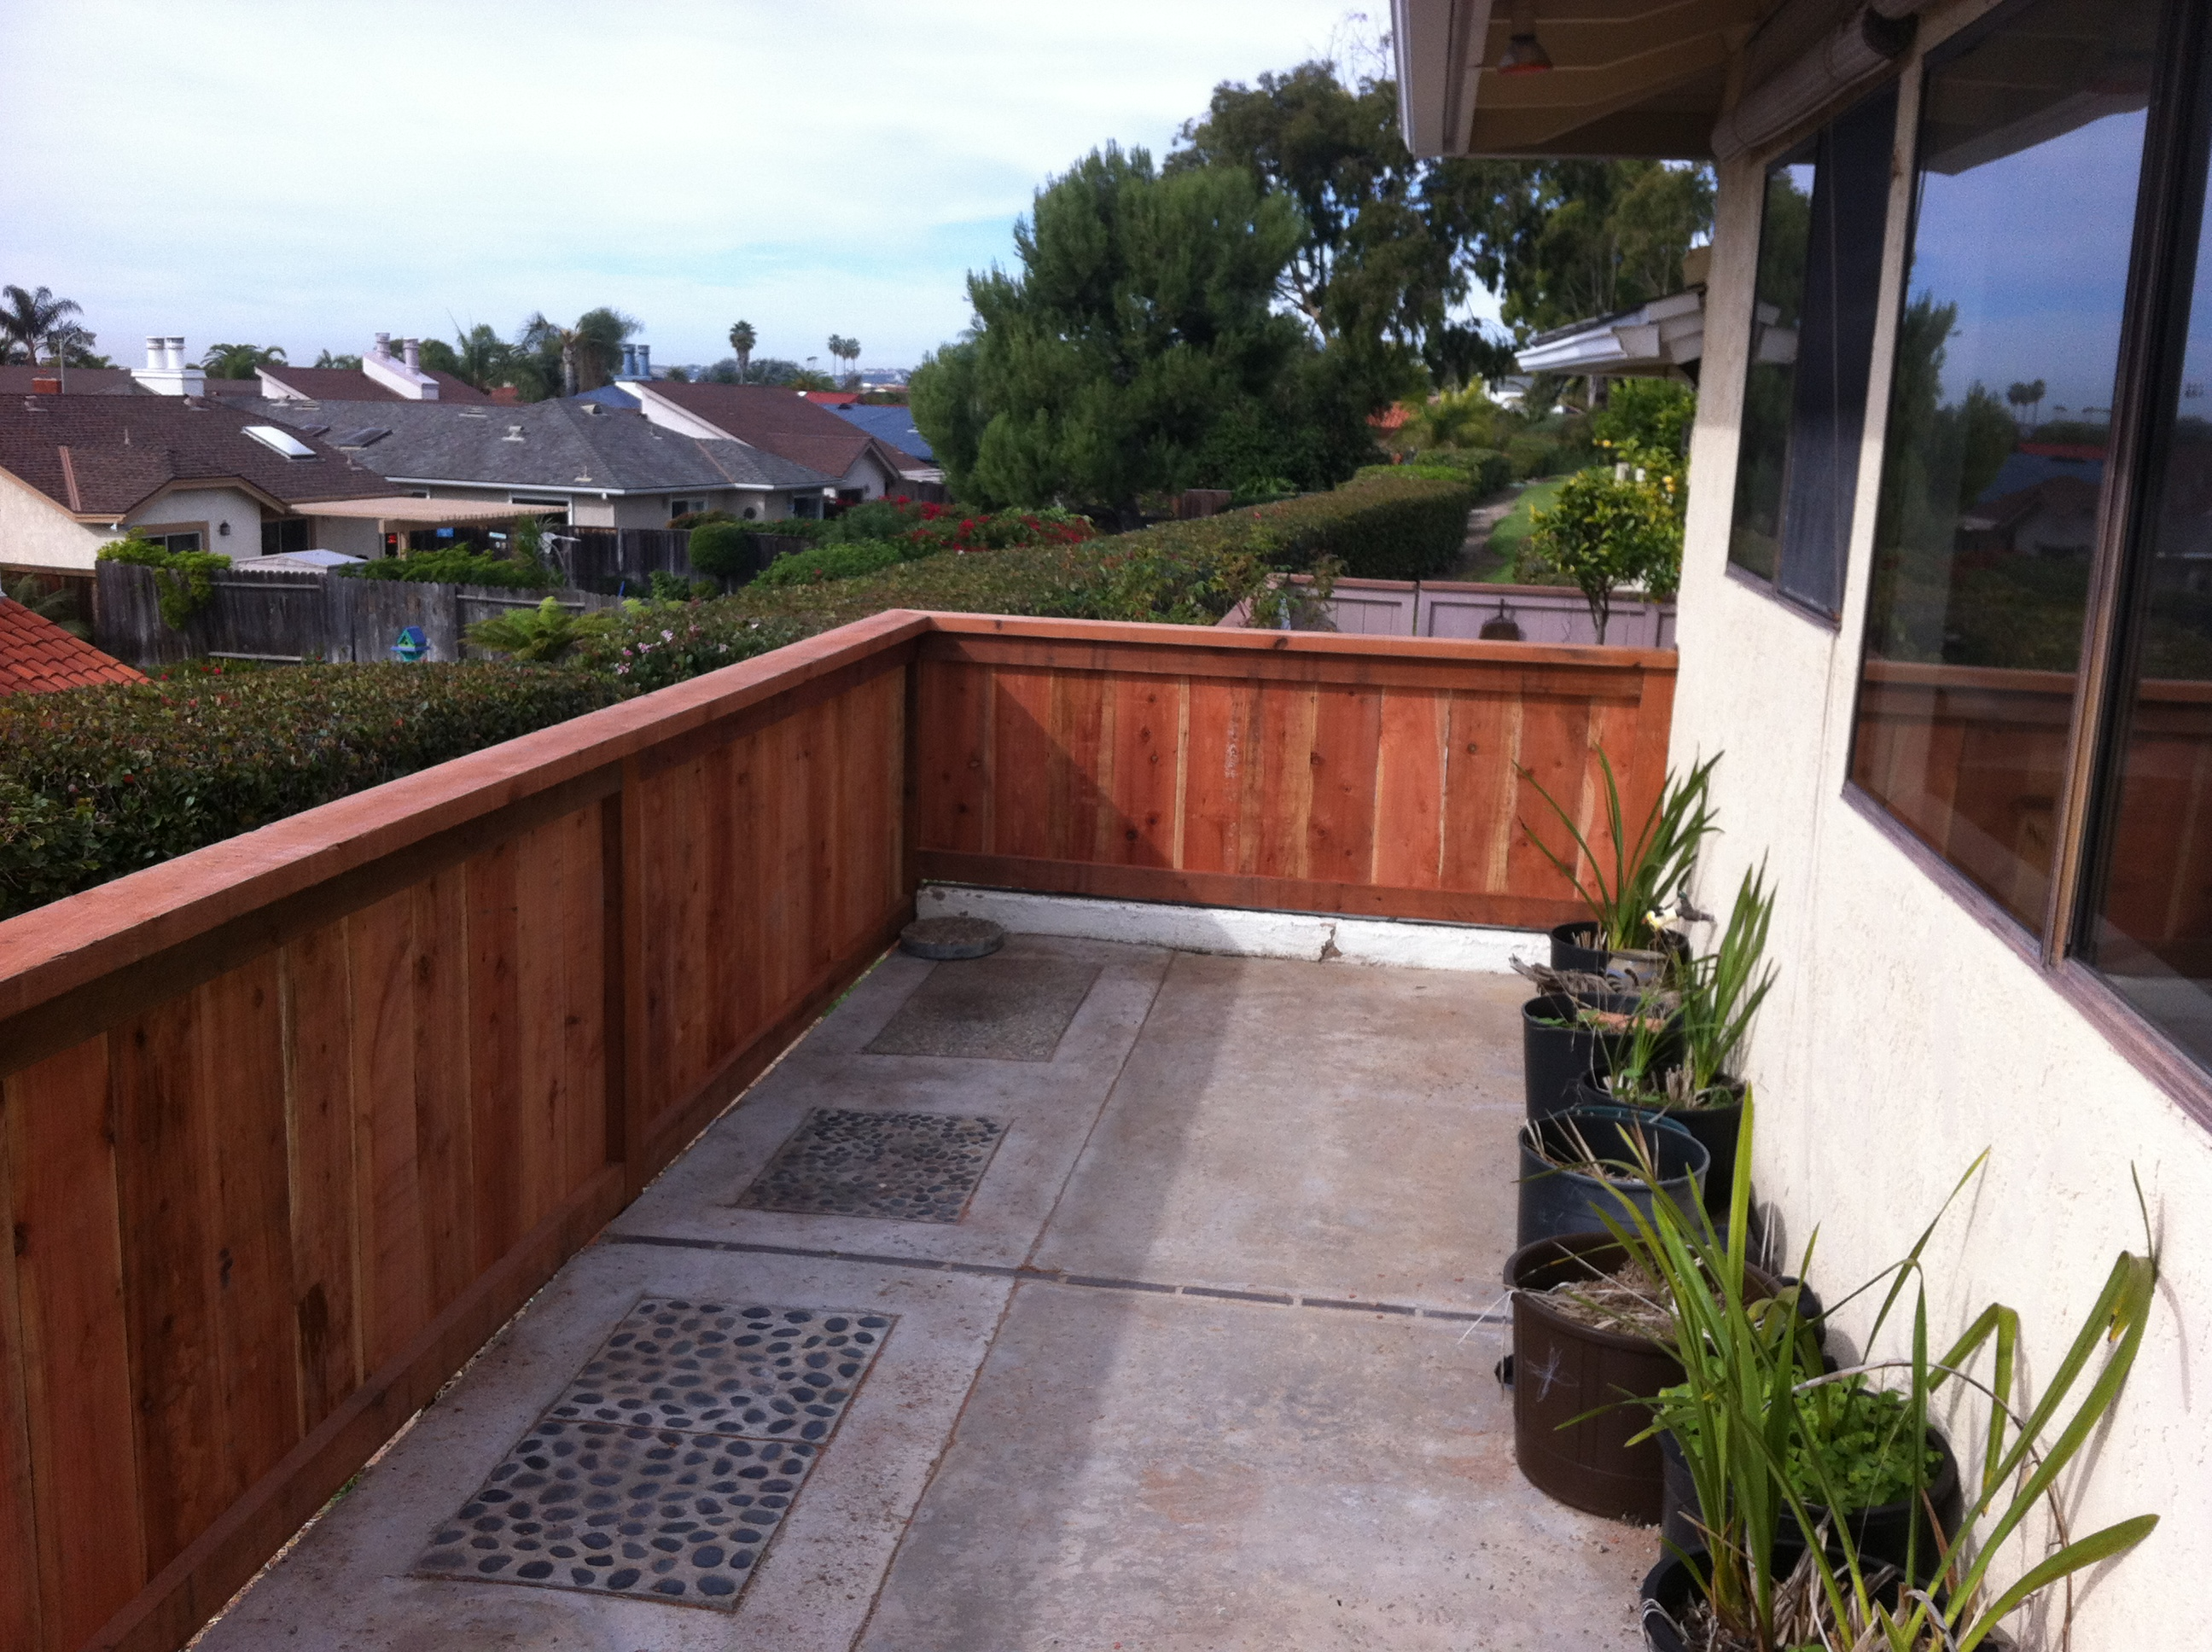 4' trim and cap style fence